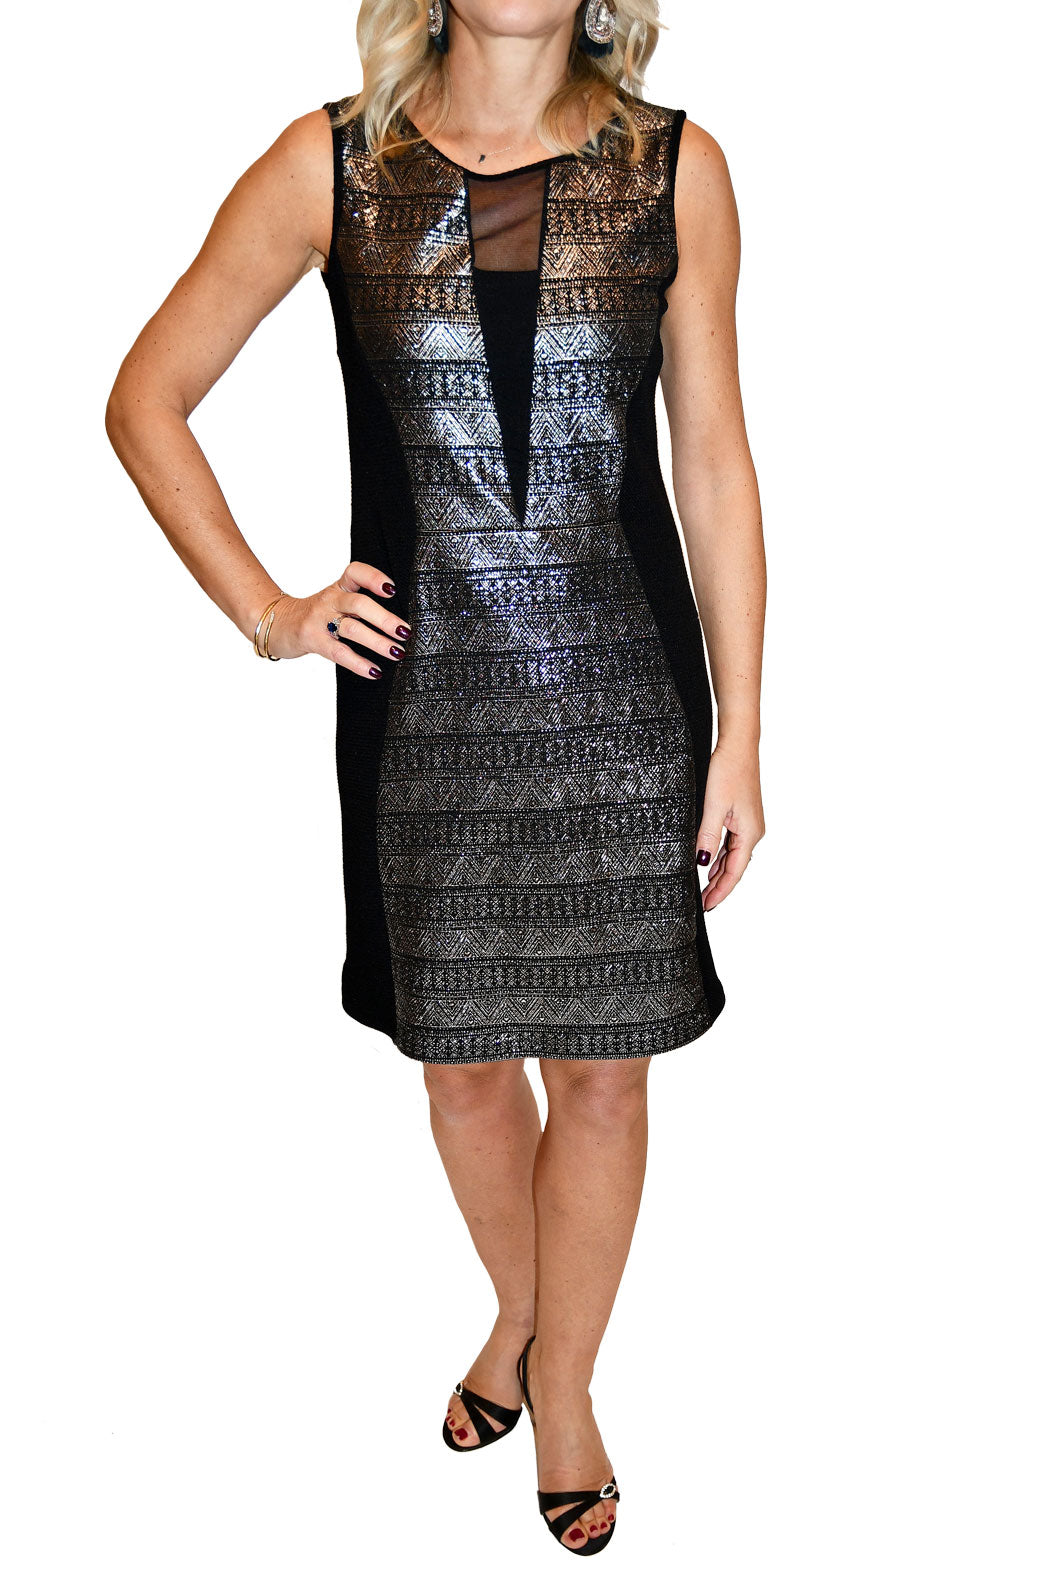 Front view of metallic dress with deep v neckline and mesh detailing,